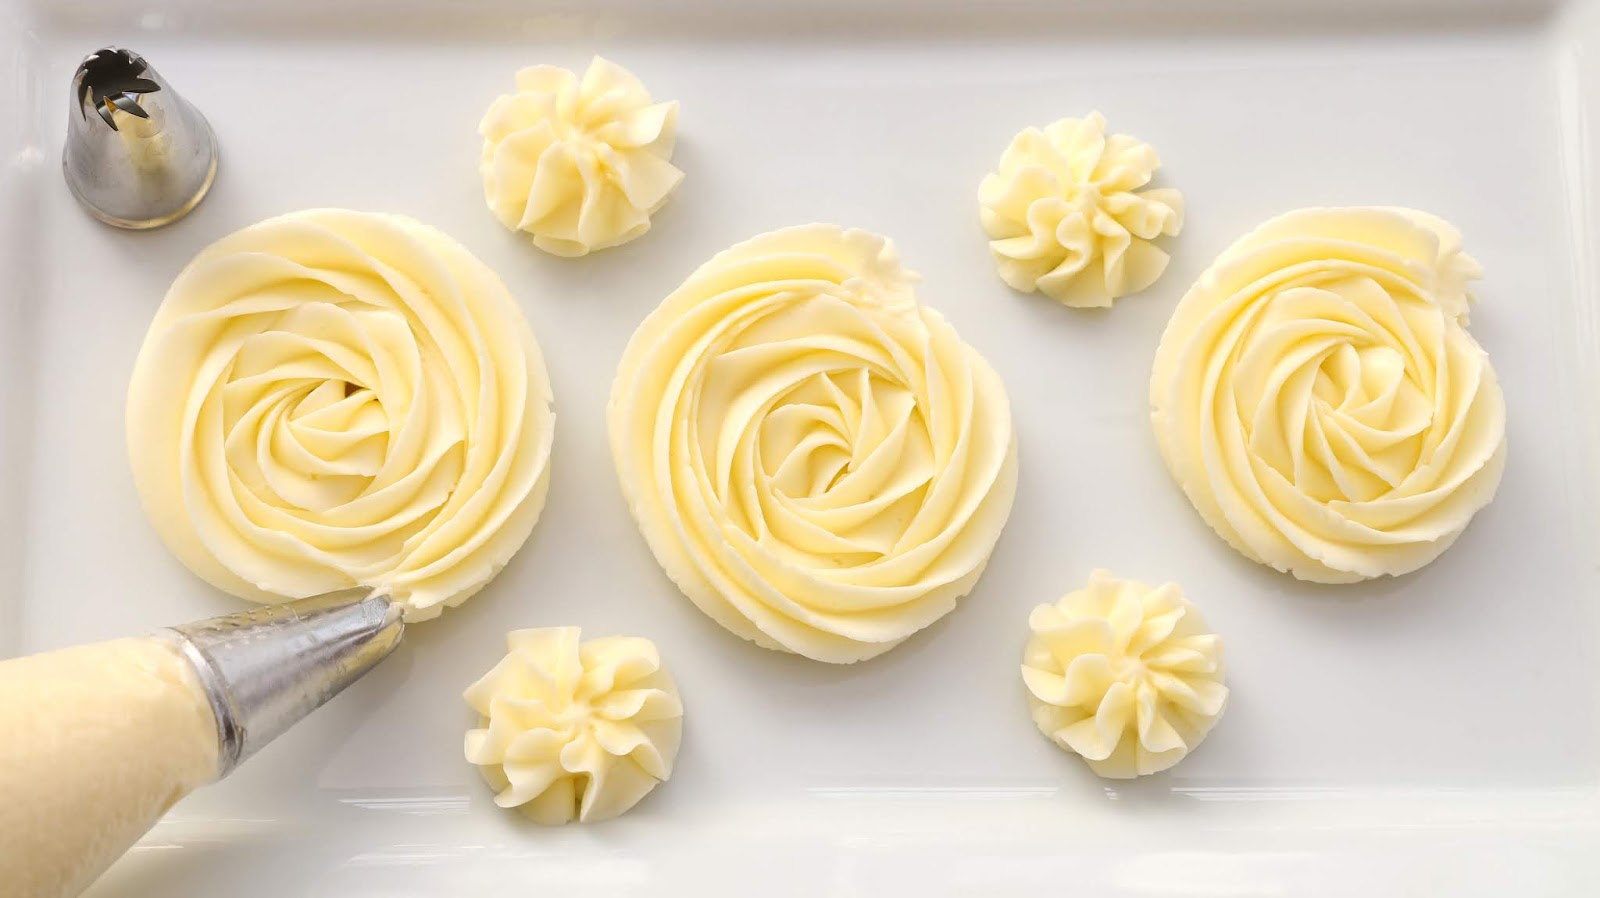 Josephine S Recipes Perfect Silky Smooth Buttercream Icing Easy Buttercream Frosting Recipe